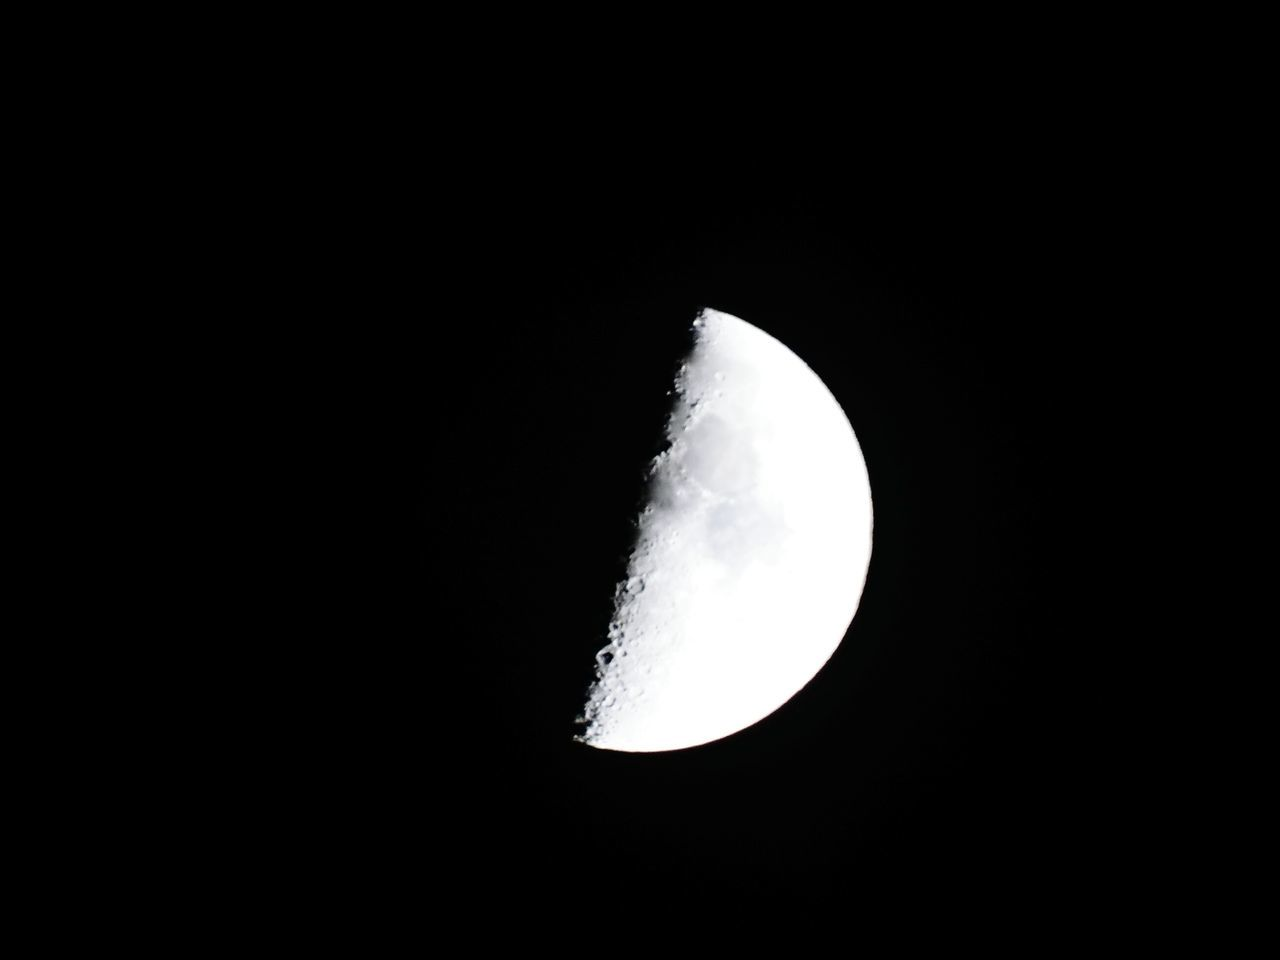 moon, night, beauty in nature, copy space, nature, scenics, moon surface, planetary moon, half moon, astronomy, tranquility, tranquil scene, no people, clear sky, outdoors, low angle view, sky, space